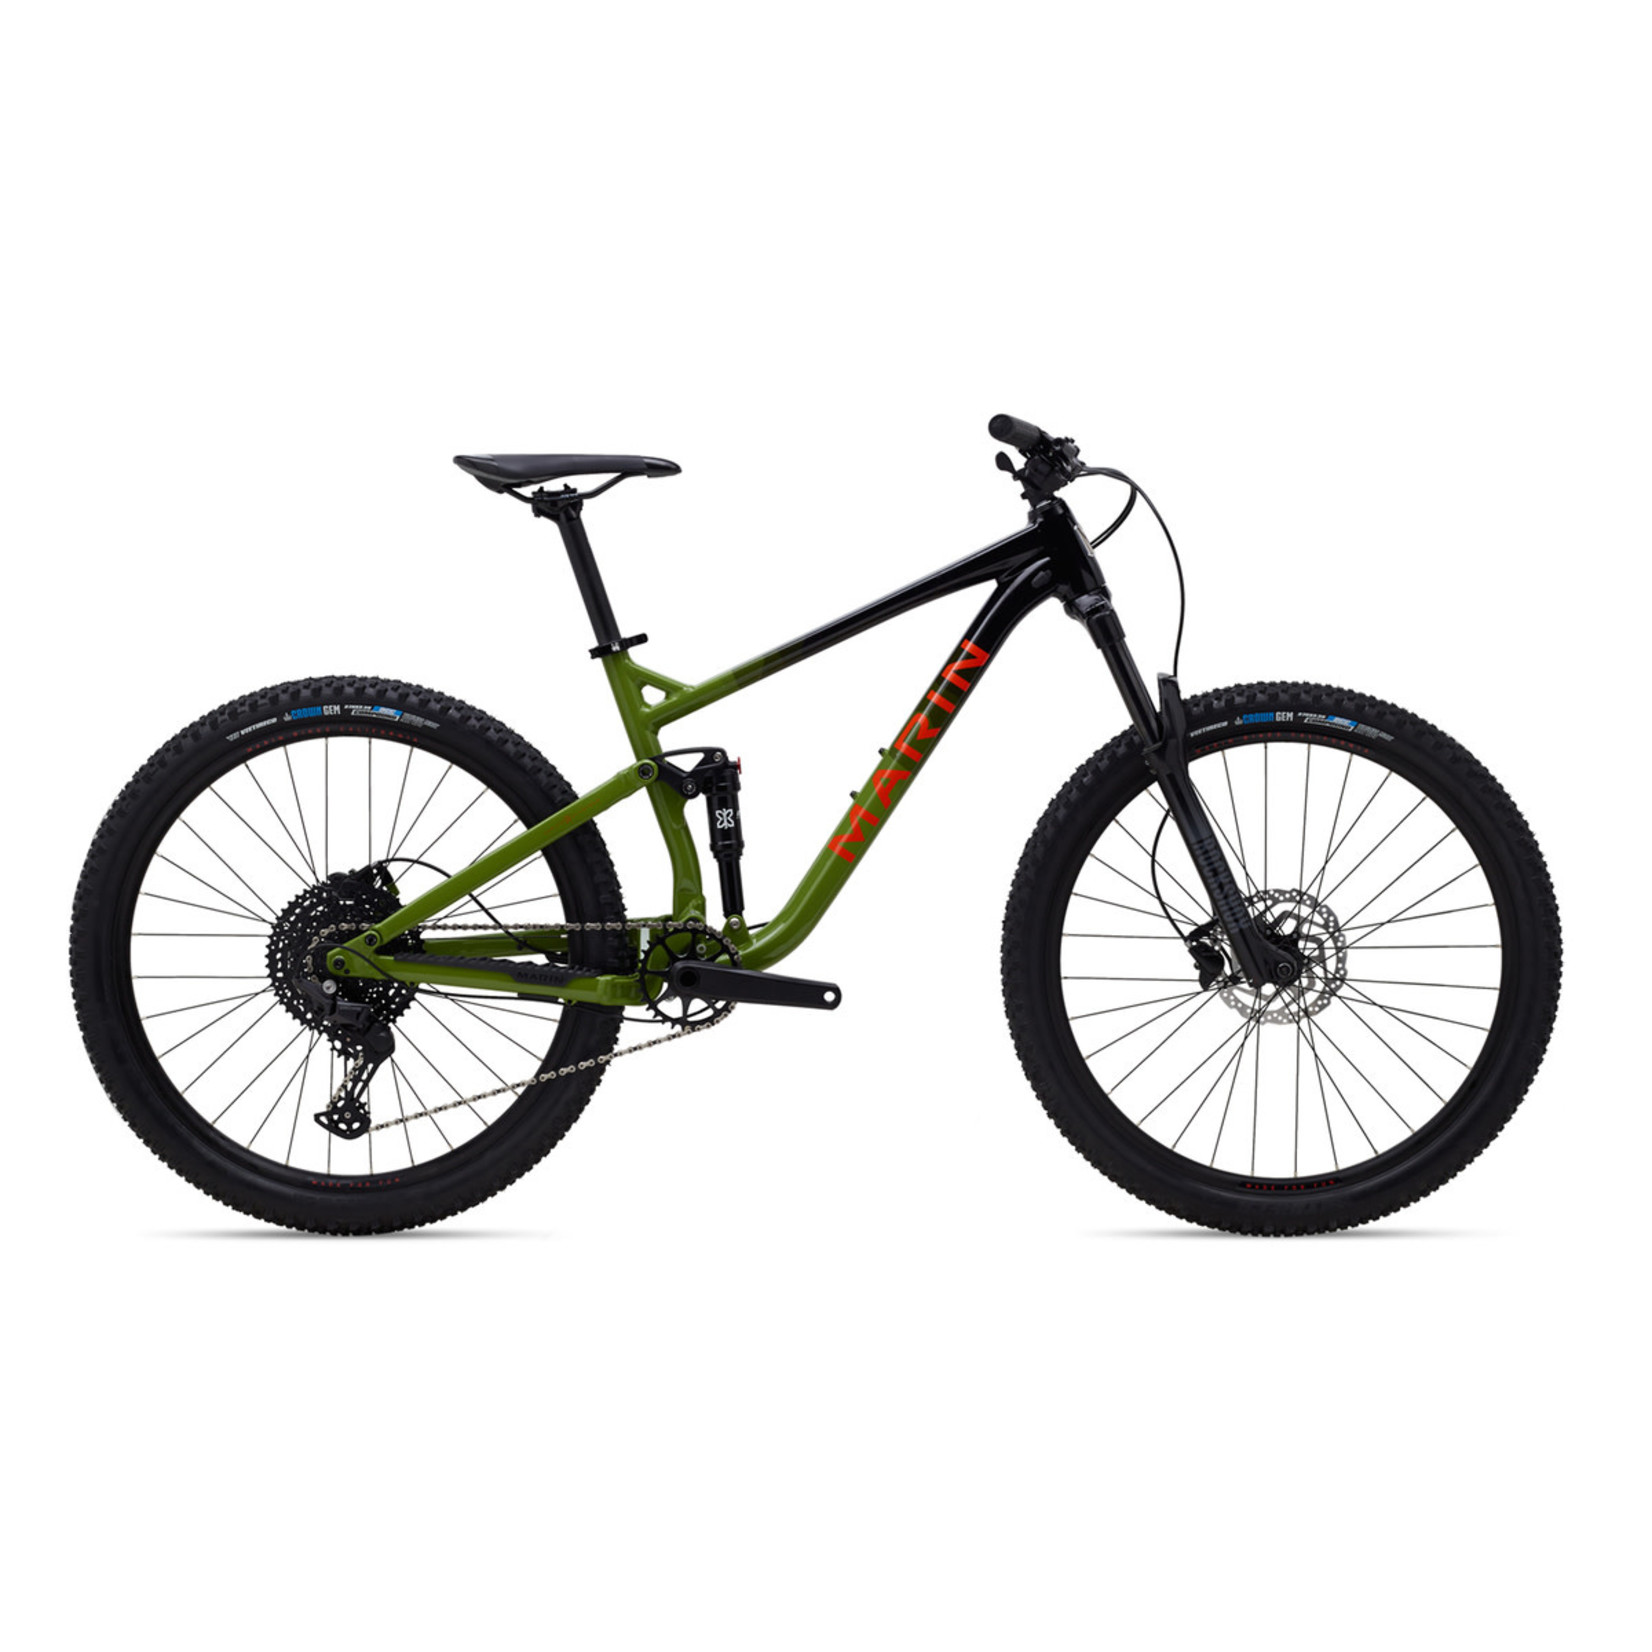 Marin RIFT ZONE 1 27.5 BK/ORANGE